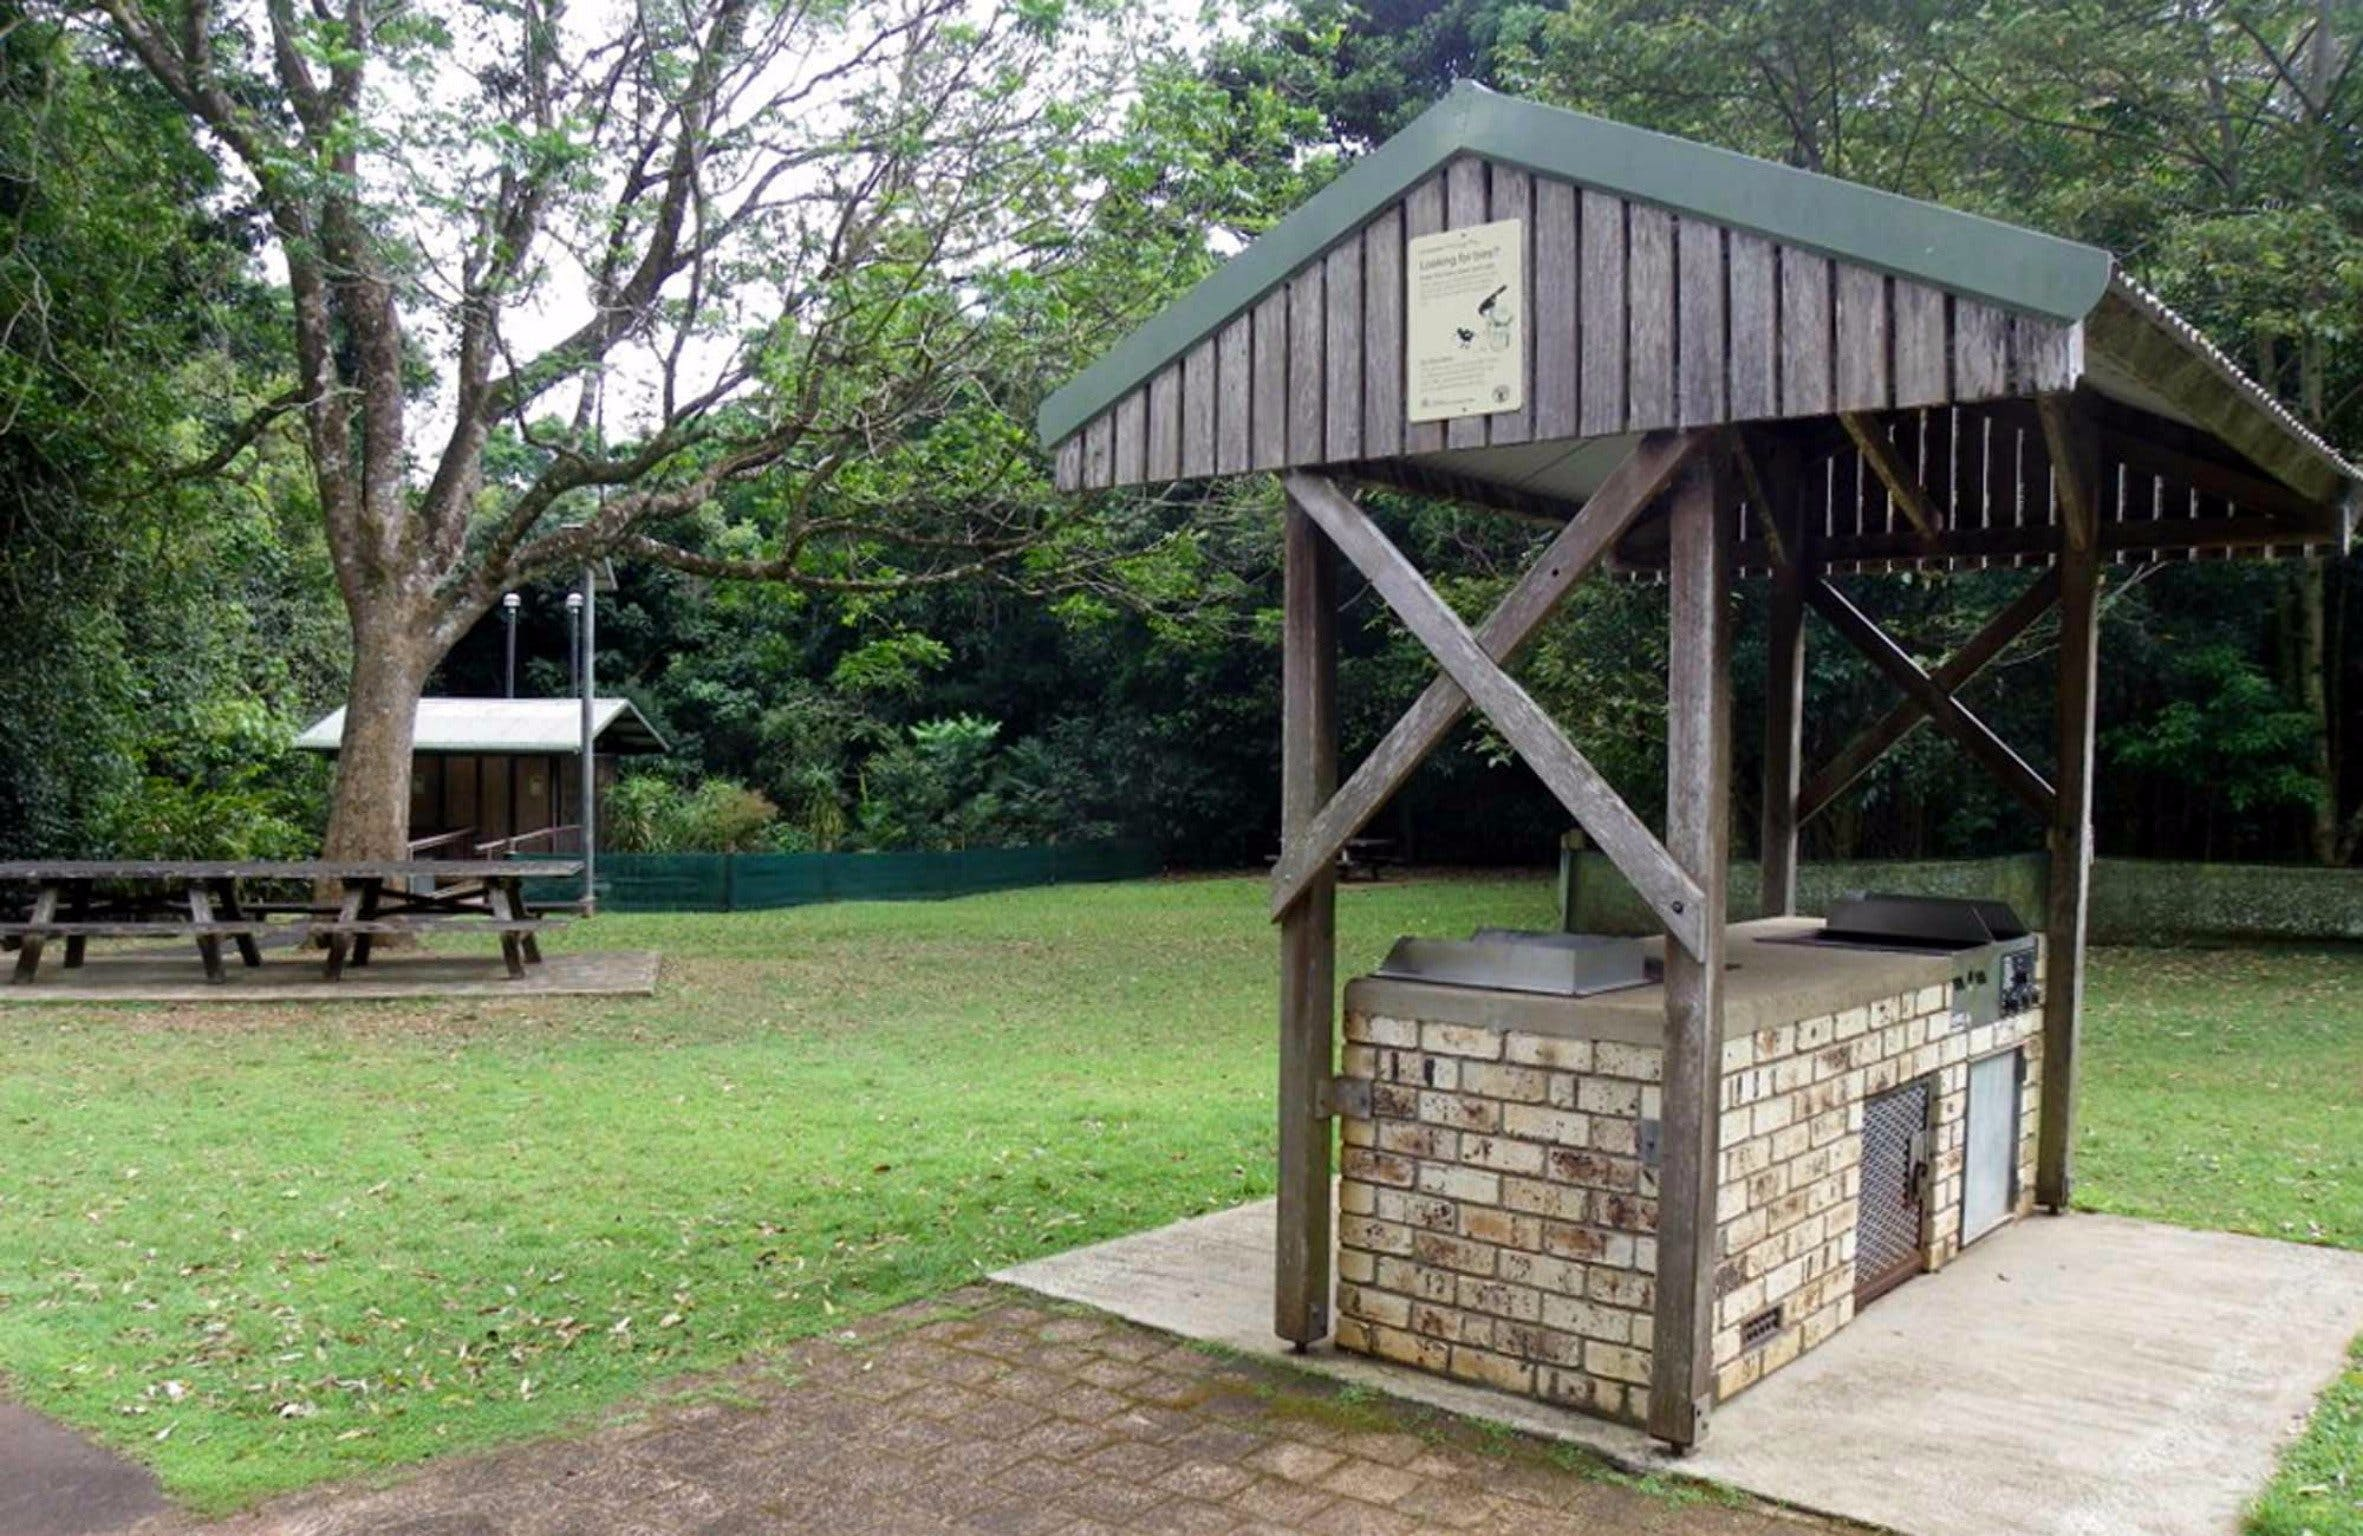 Victoria Park picnic area - Accommodation BNB